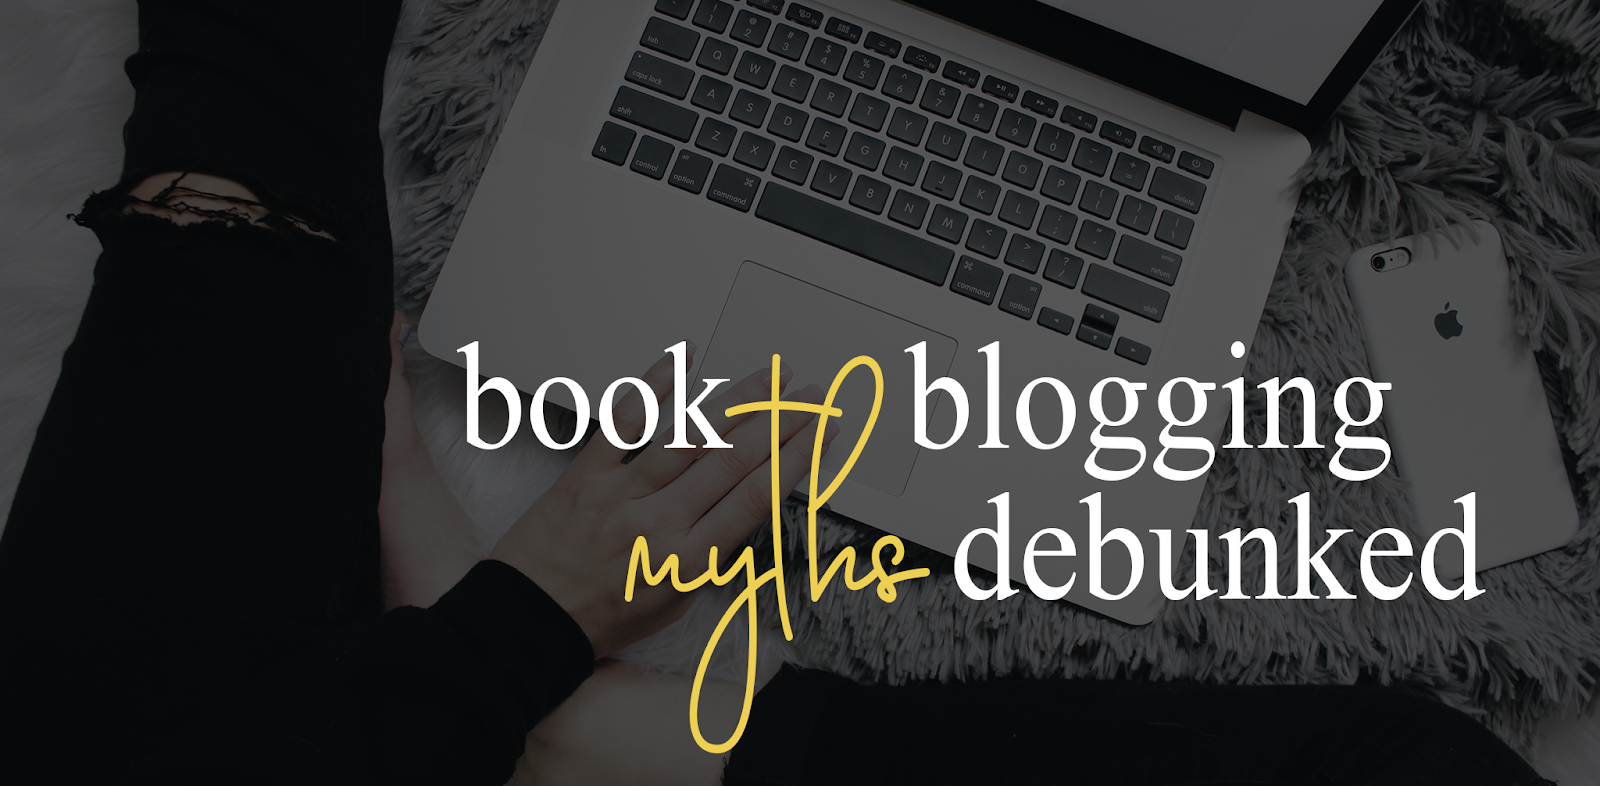 Book Blogging Myths Debunked Books Nest Graphic